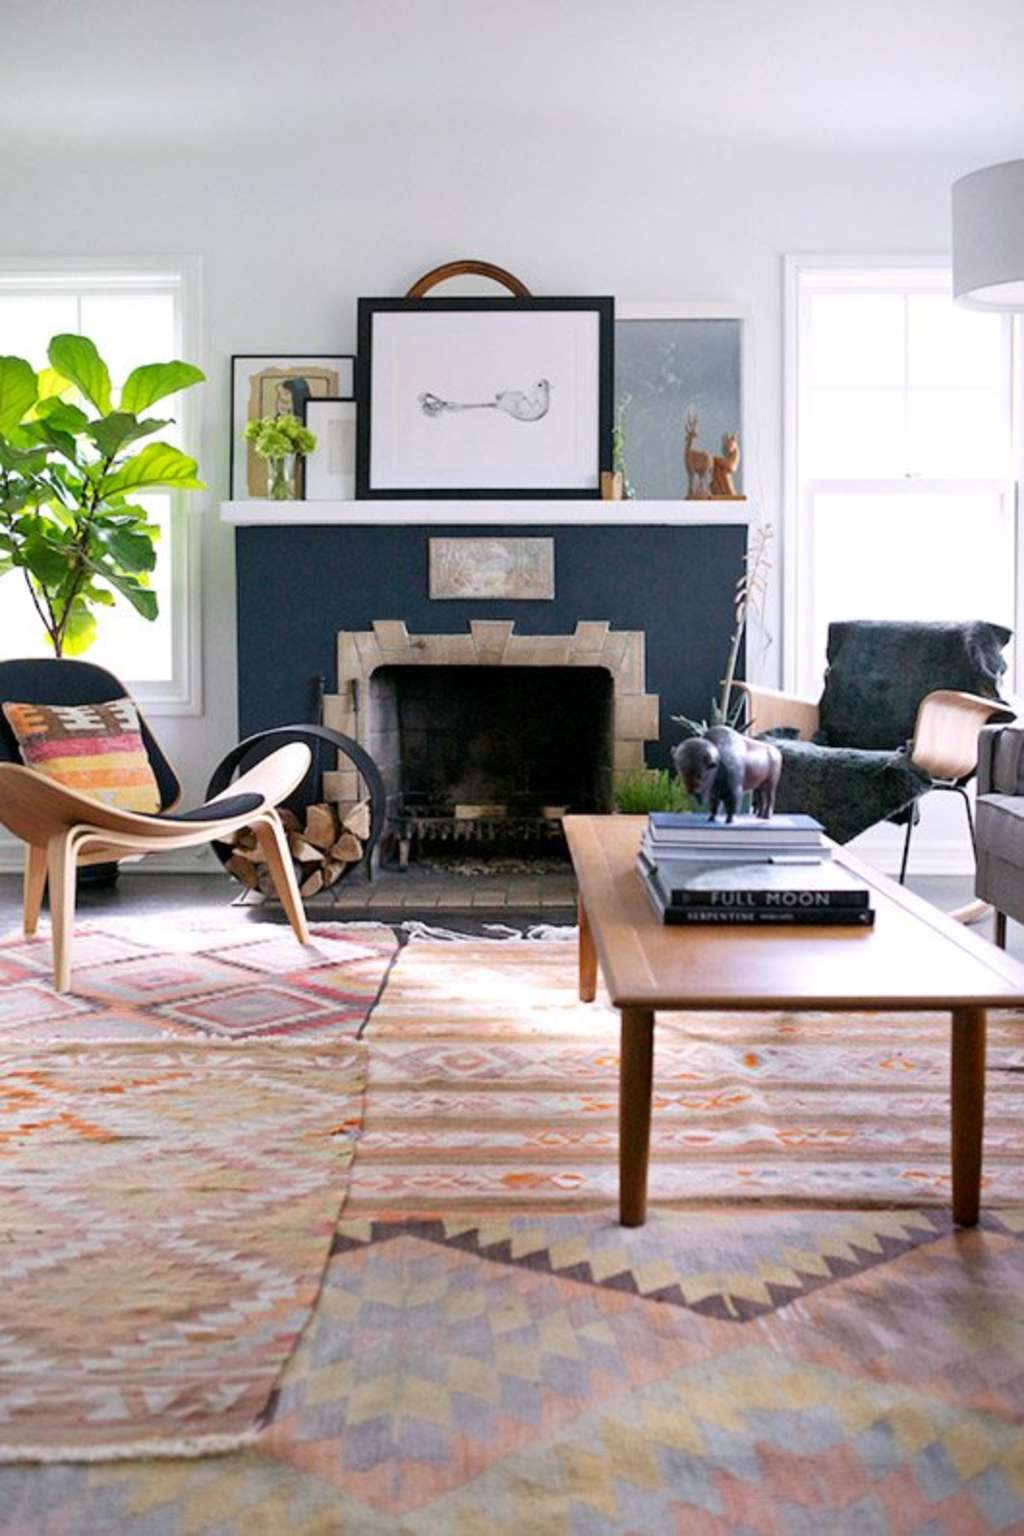 Low Ceilings Tips & Inspiration